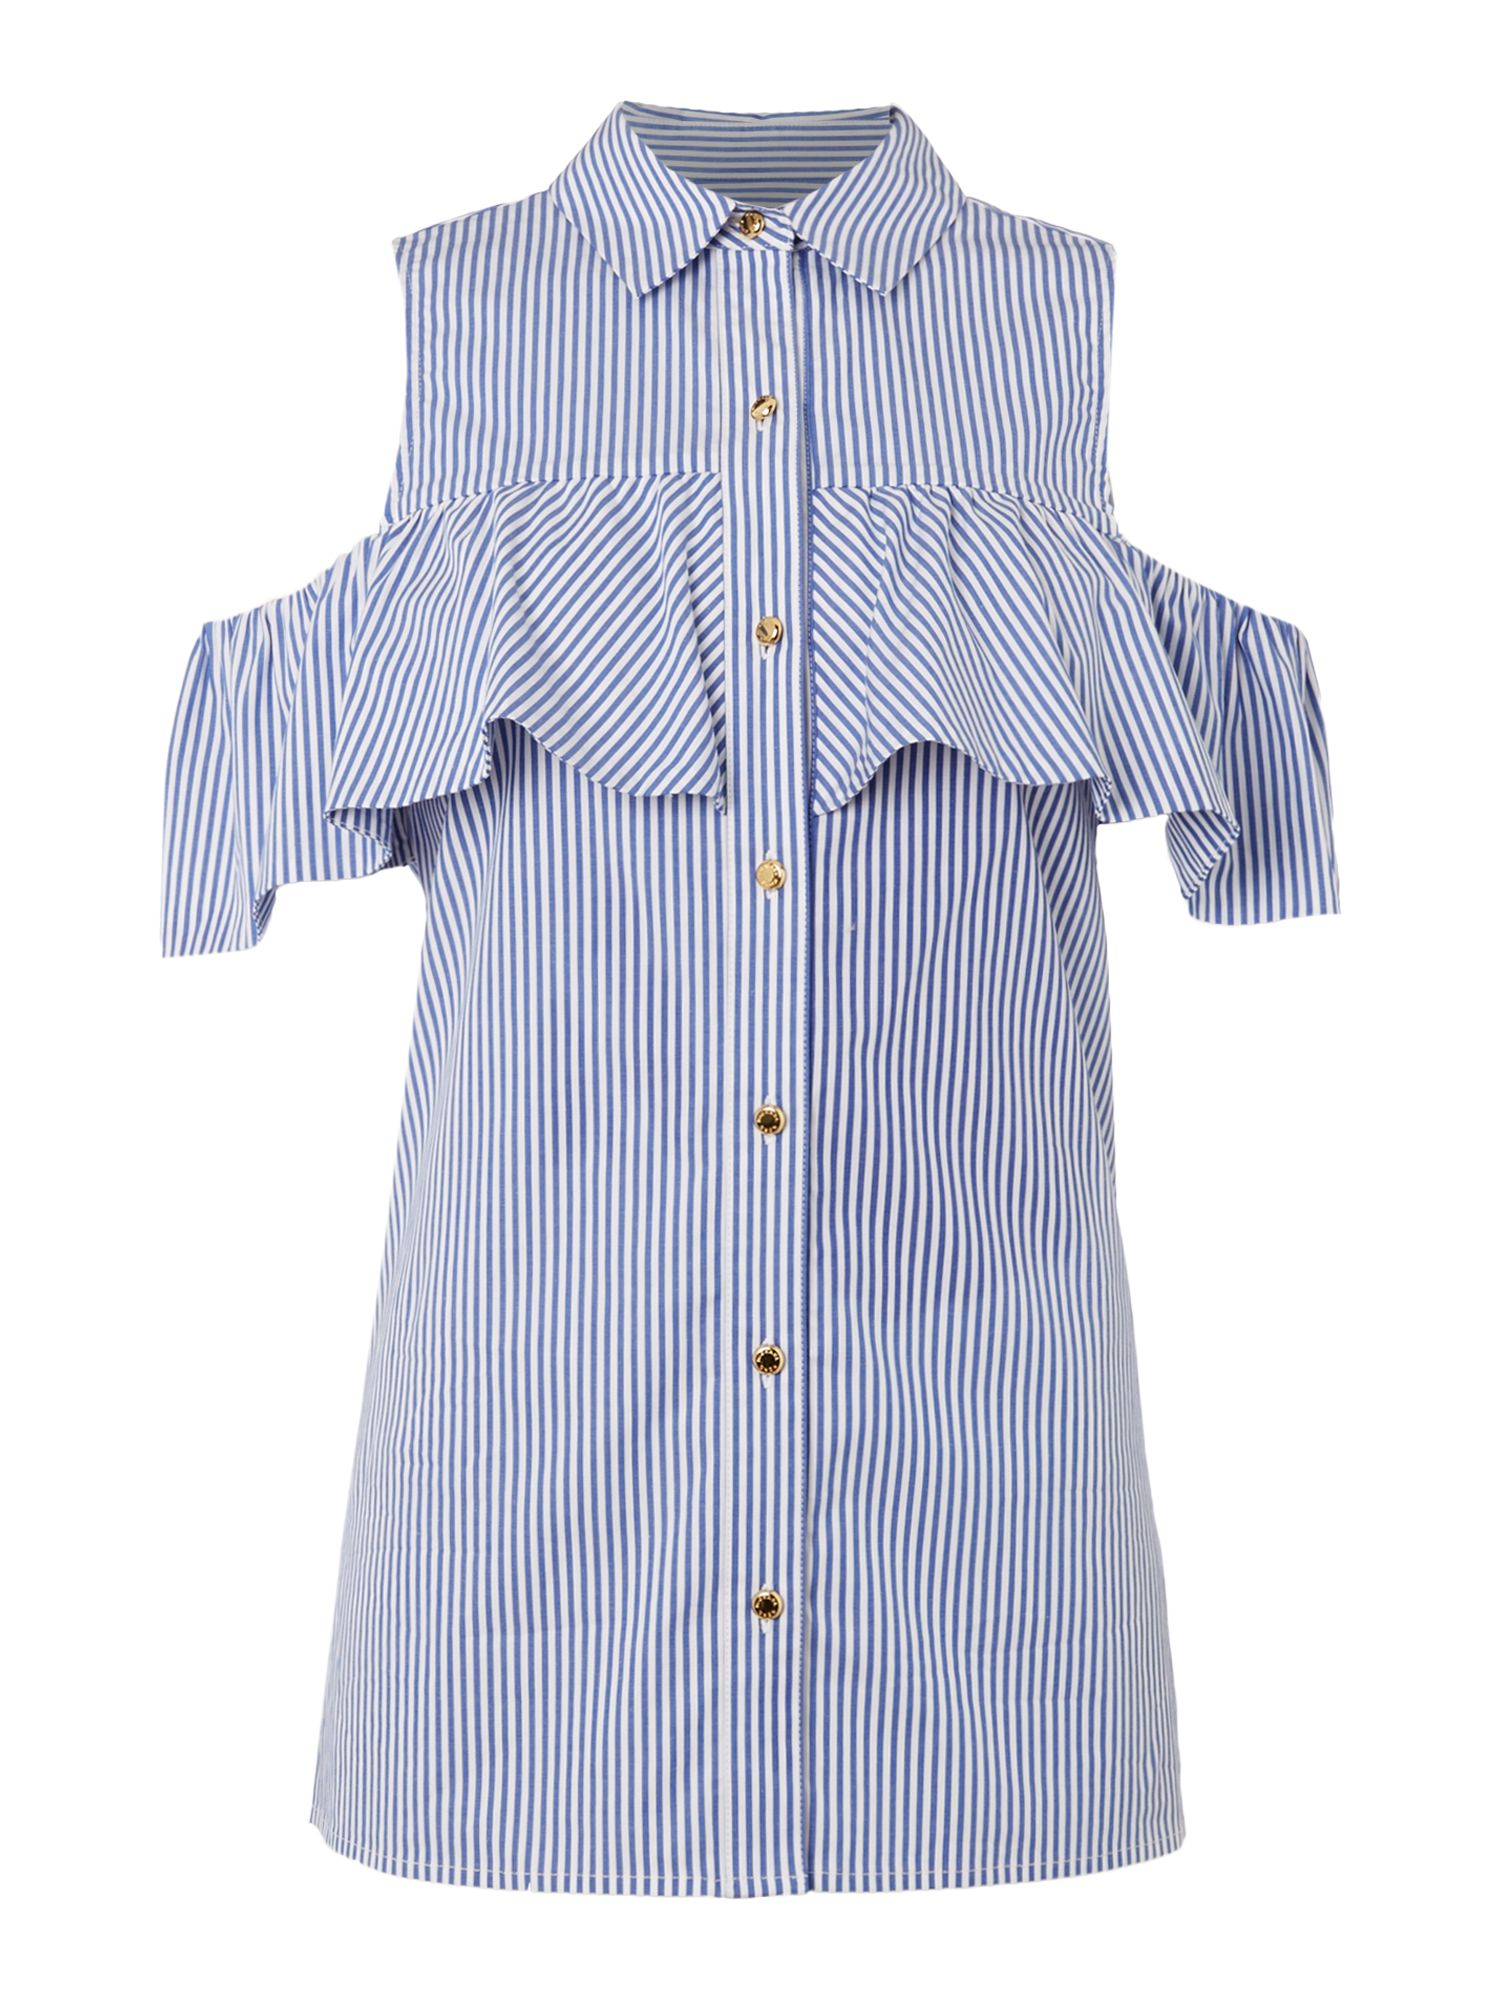 Michael Kors Short Sleeve Button Up Shirt, Blue